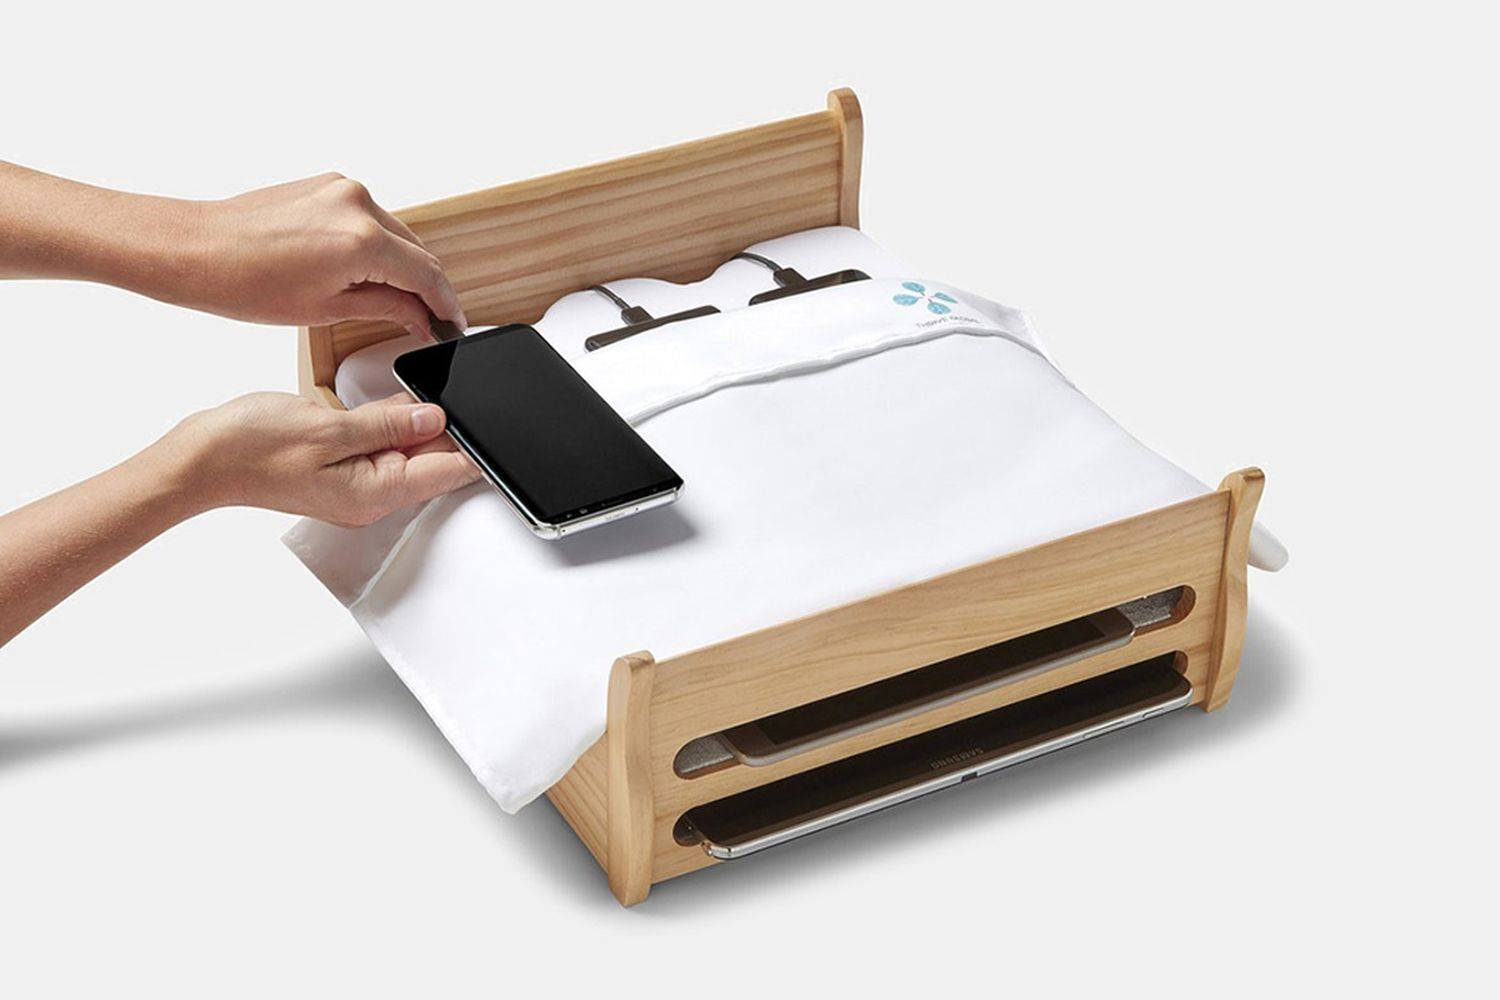 Phone Bed Charging Station